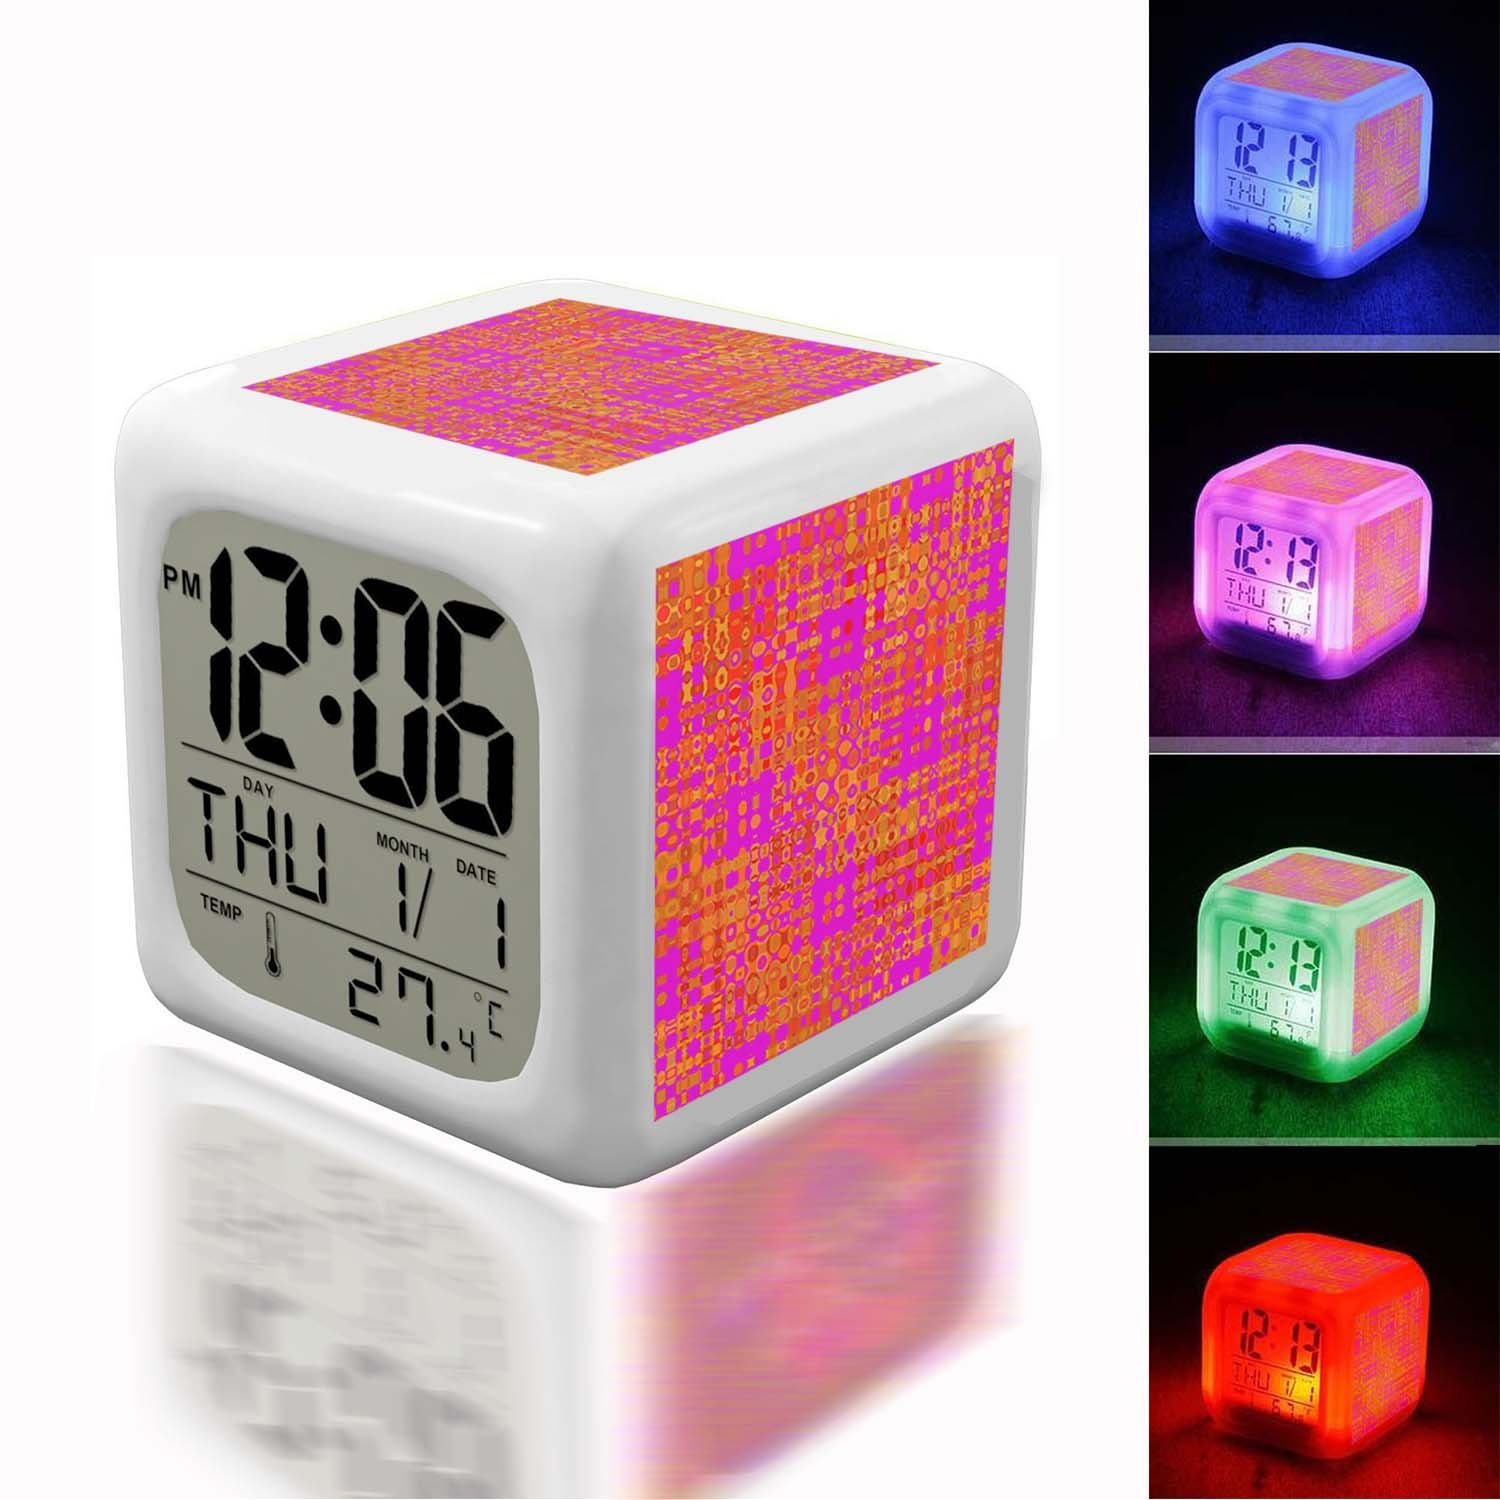 Alarm Clock 7 LED Color Changing Wake Up Bedroom with Data and Temperature Display (Changable Color) Customize the pattern-528.pink orange bright abstract background pattern